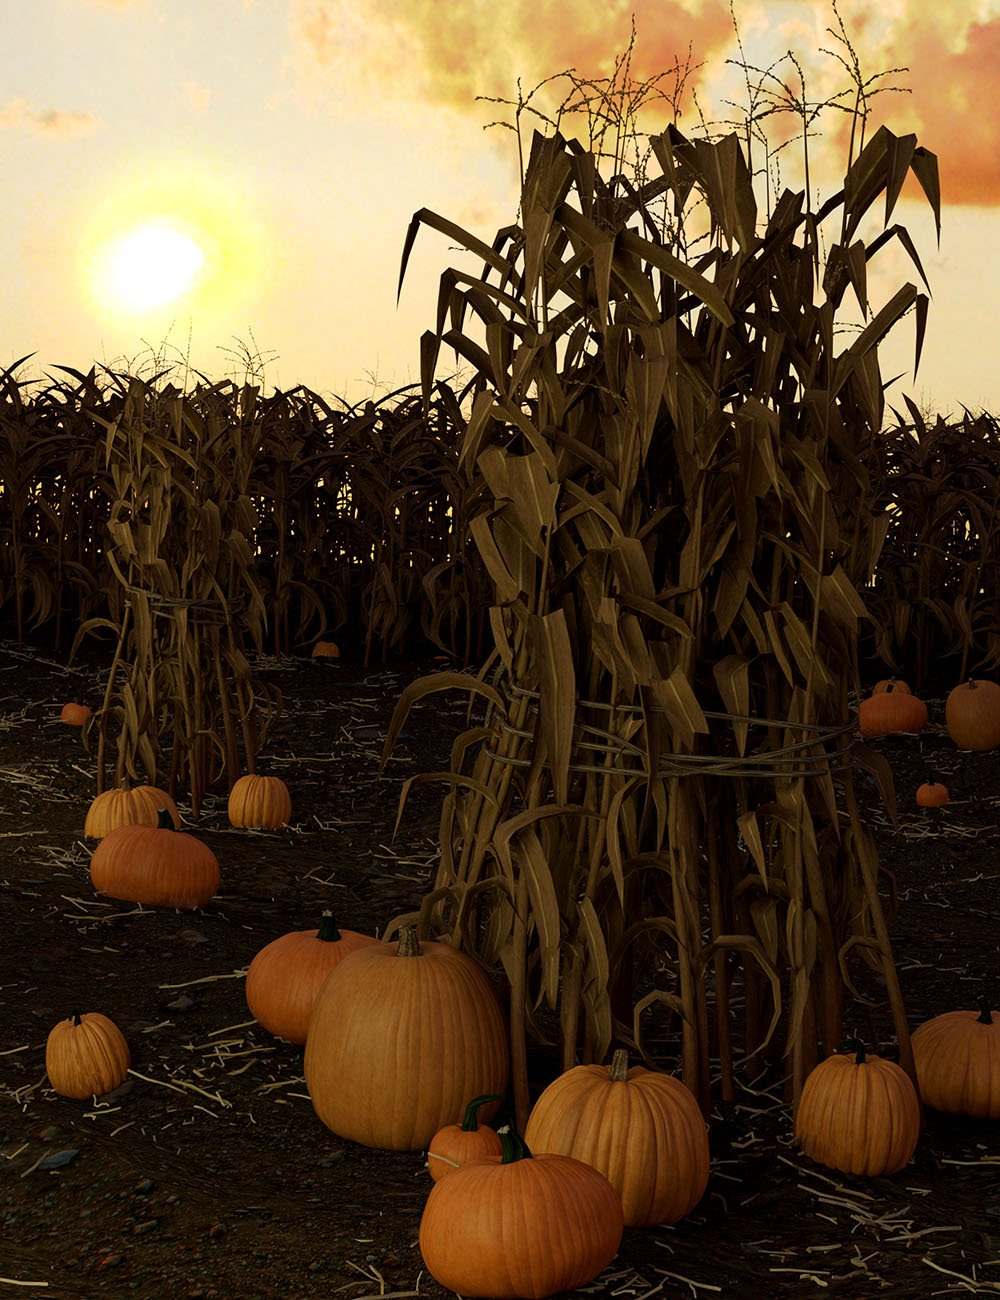 Corn Stalks and Fields by: Orestes Graphics, 3D Models by Daz 3D